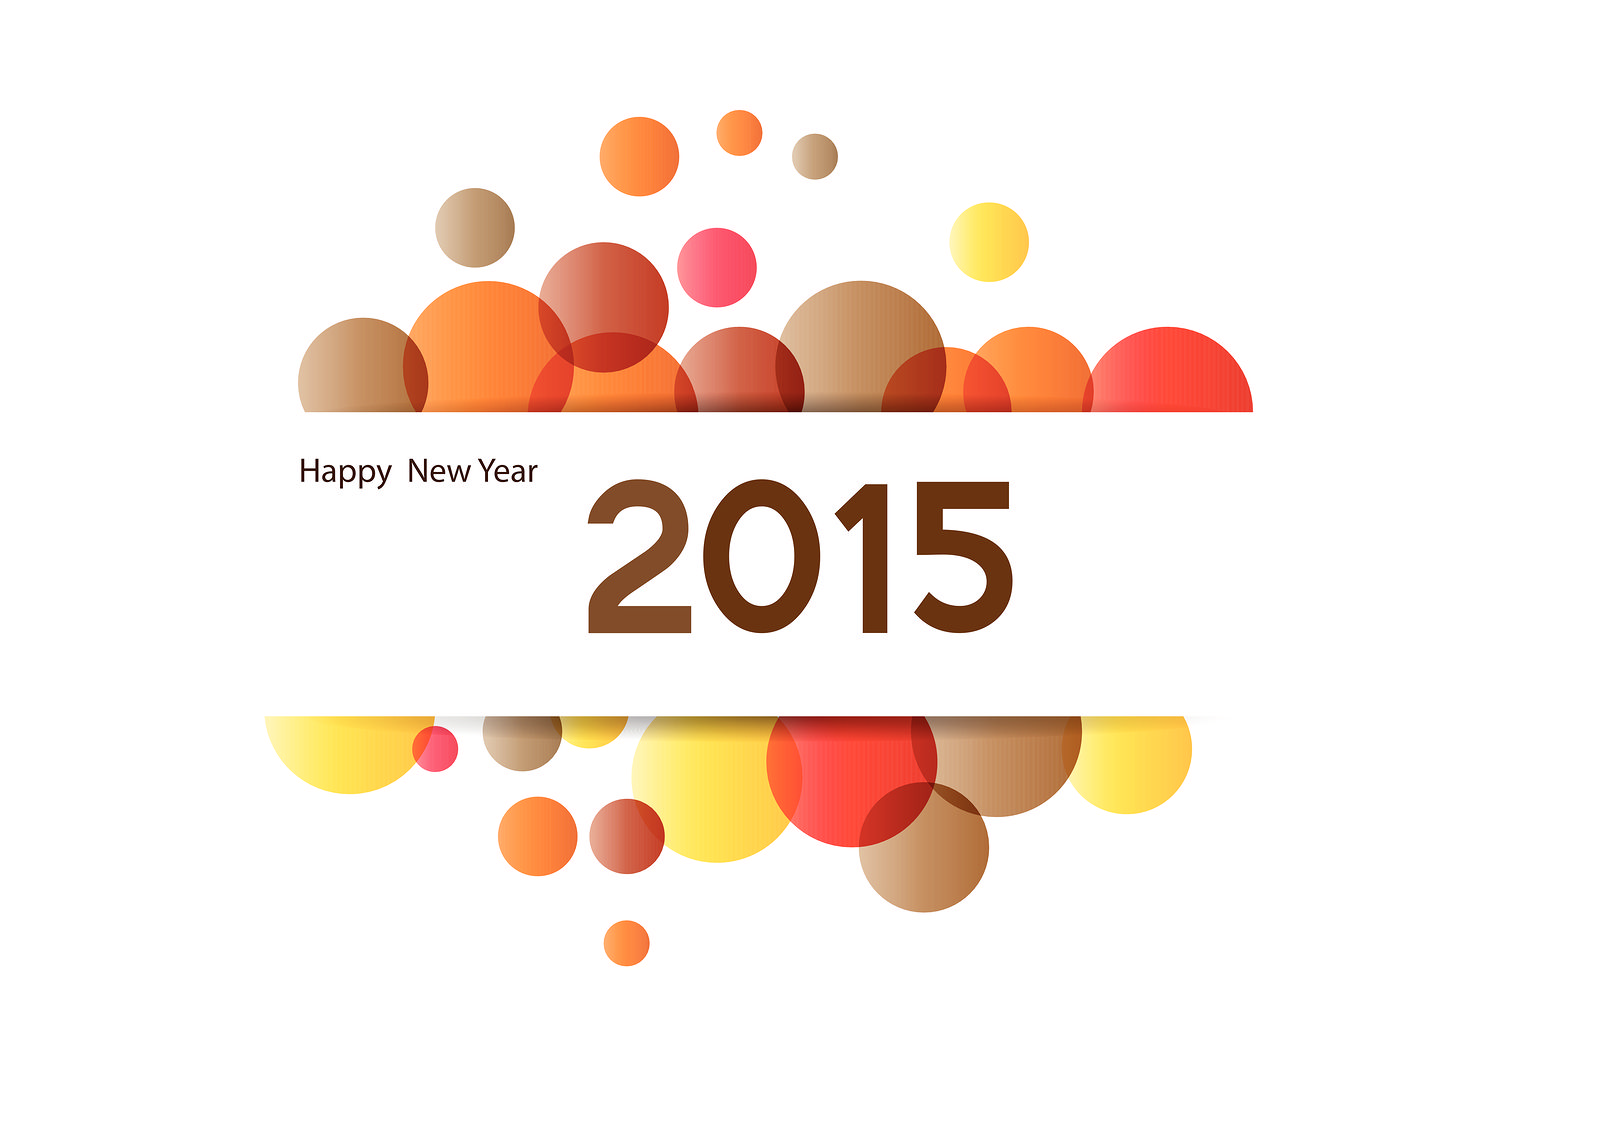 Download best new year greetings 2015 to your well wishers these download best new year greetings 2015 to your well wishers these cards are free and kristyandbryce Images